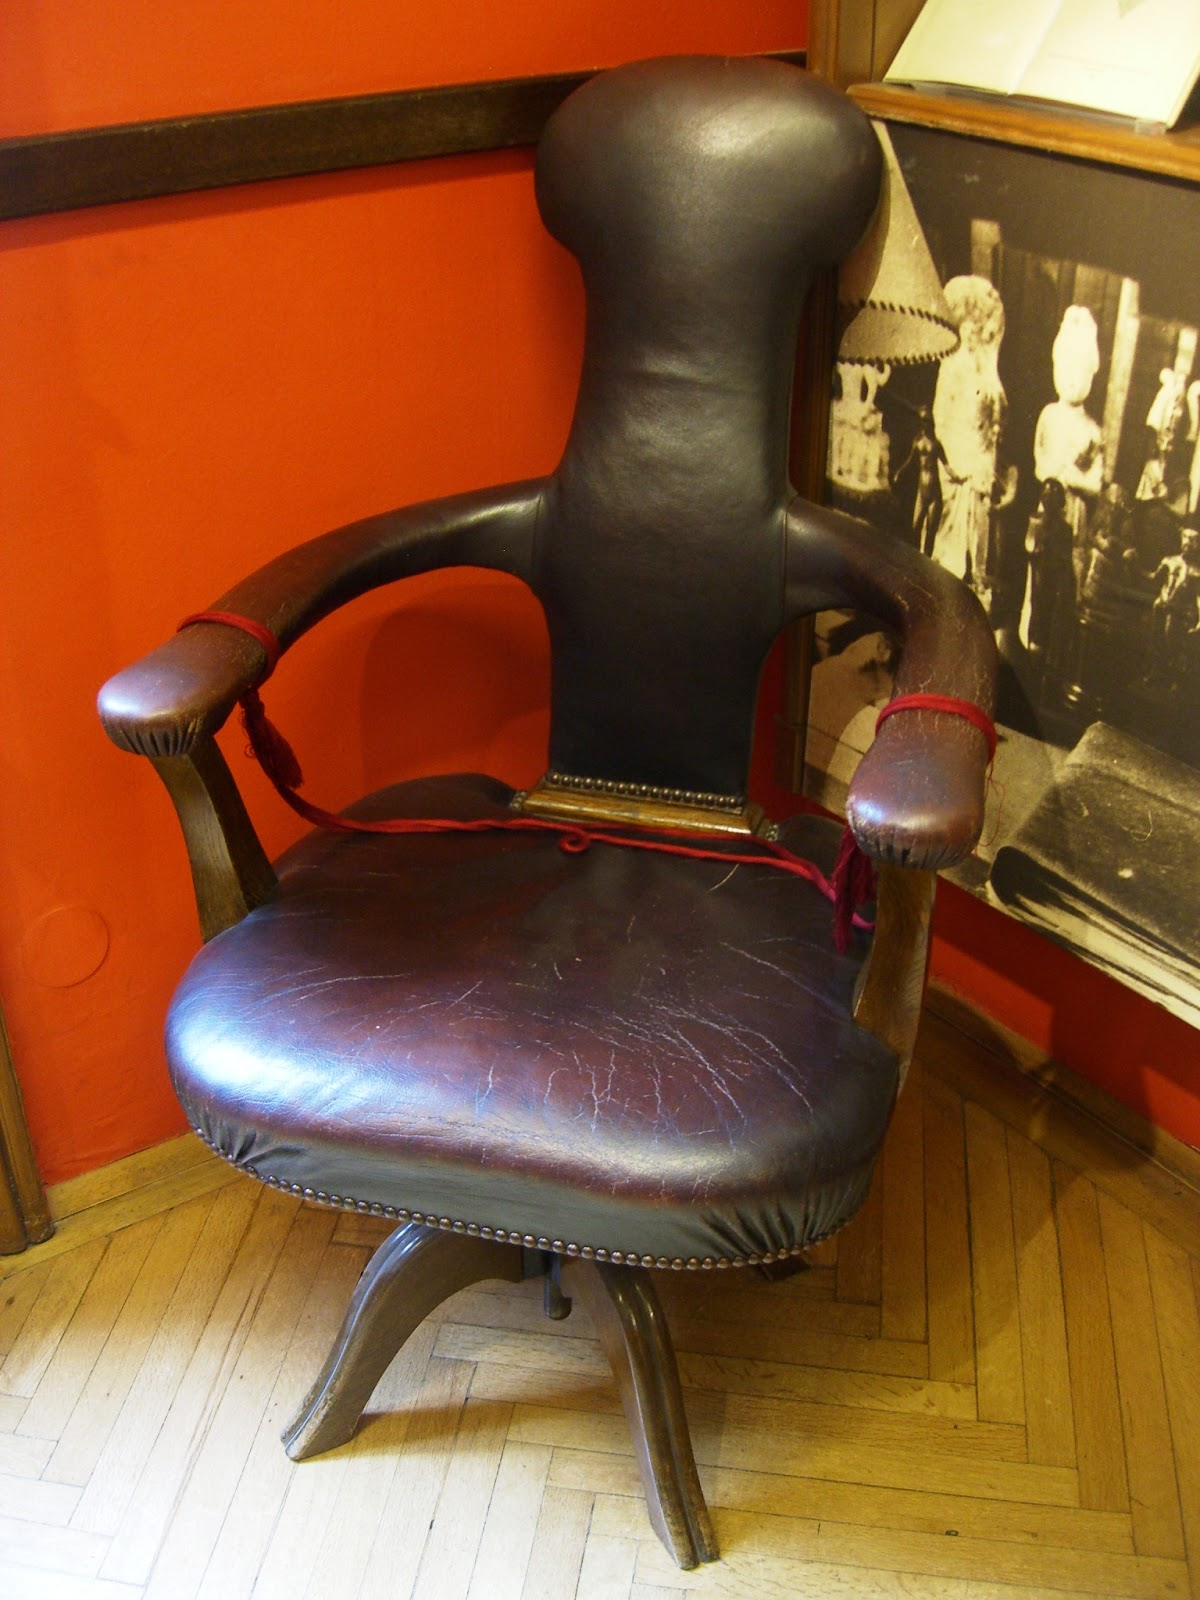 Freud's chair (reproduction in Freud Museum, Vienna), a gift from his daughter, Mathilde. Photo, Mar del Sur.